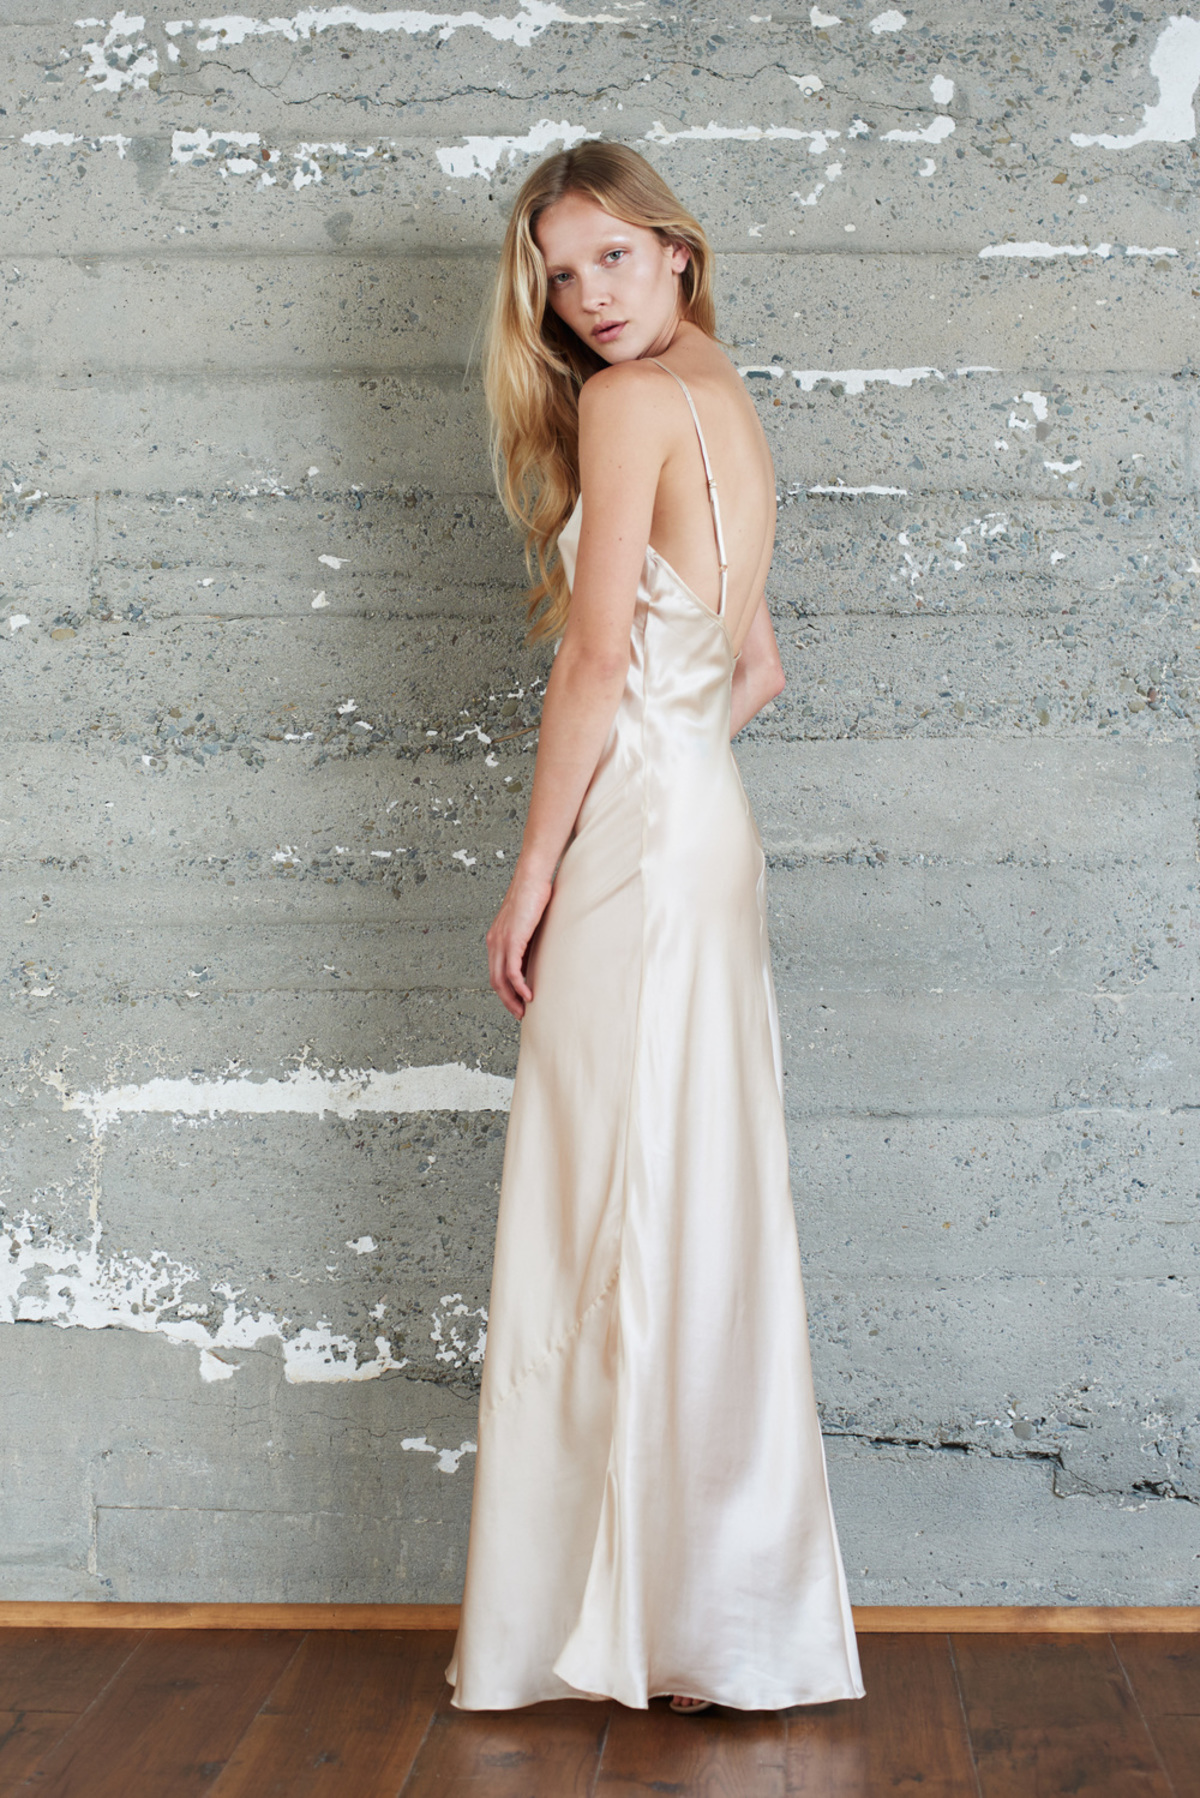 Kamperett Rosalind Silk Charmeuse Slip Dress | Champagne | Garmentory